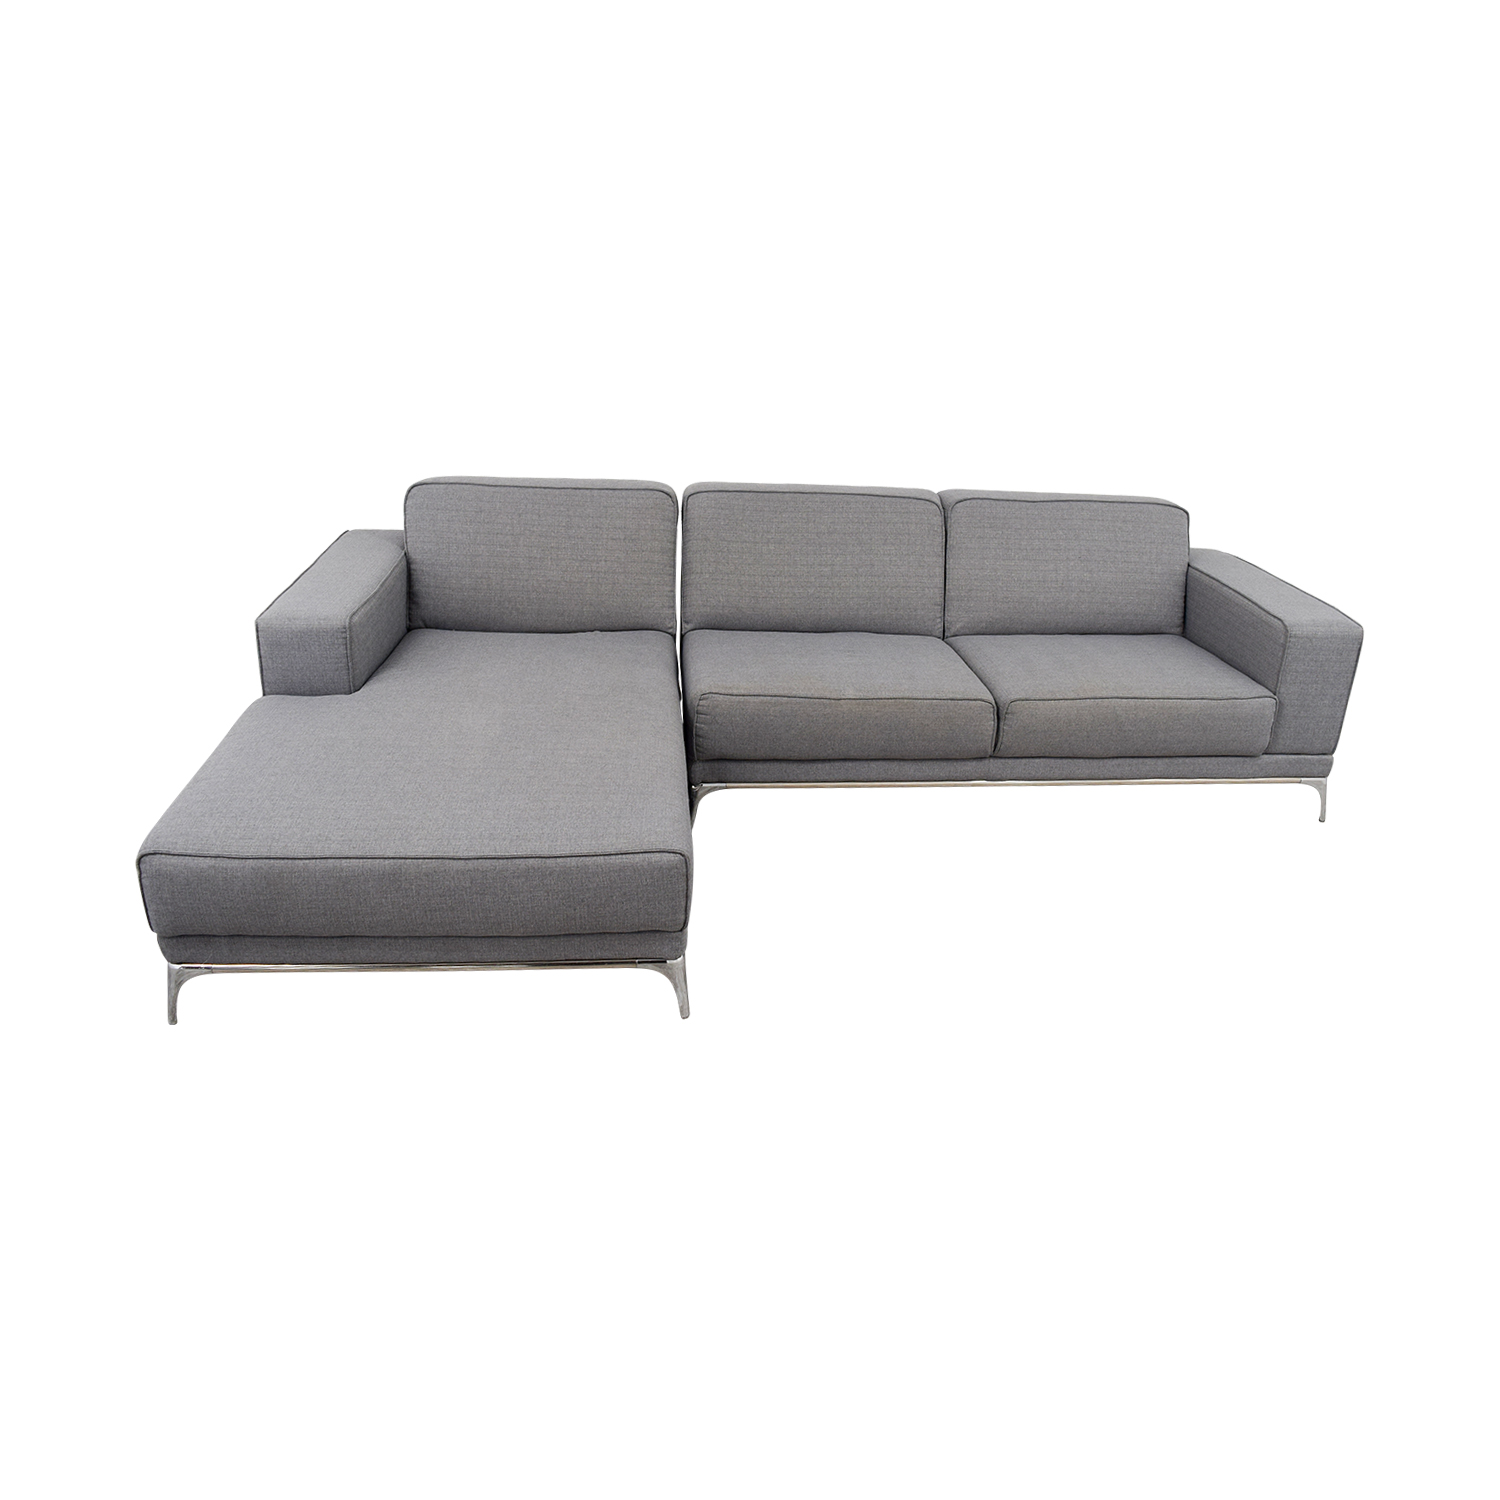 34% OFF Agata Agata Light Grey Sectional Sofas